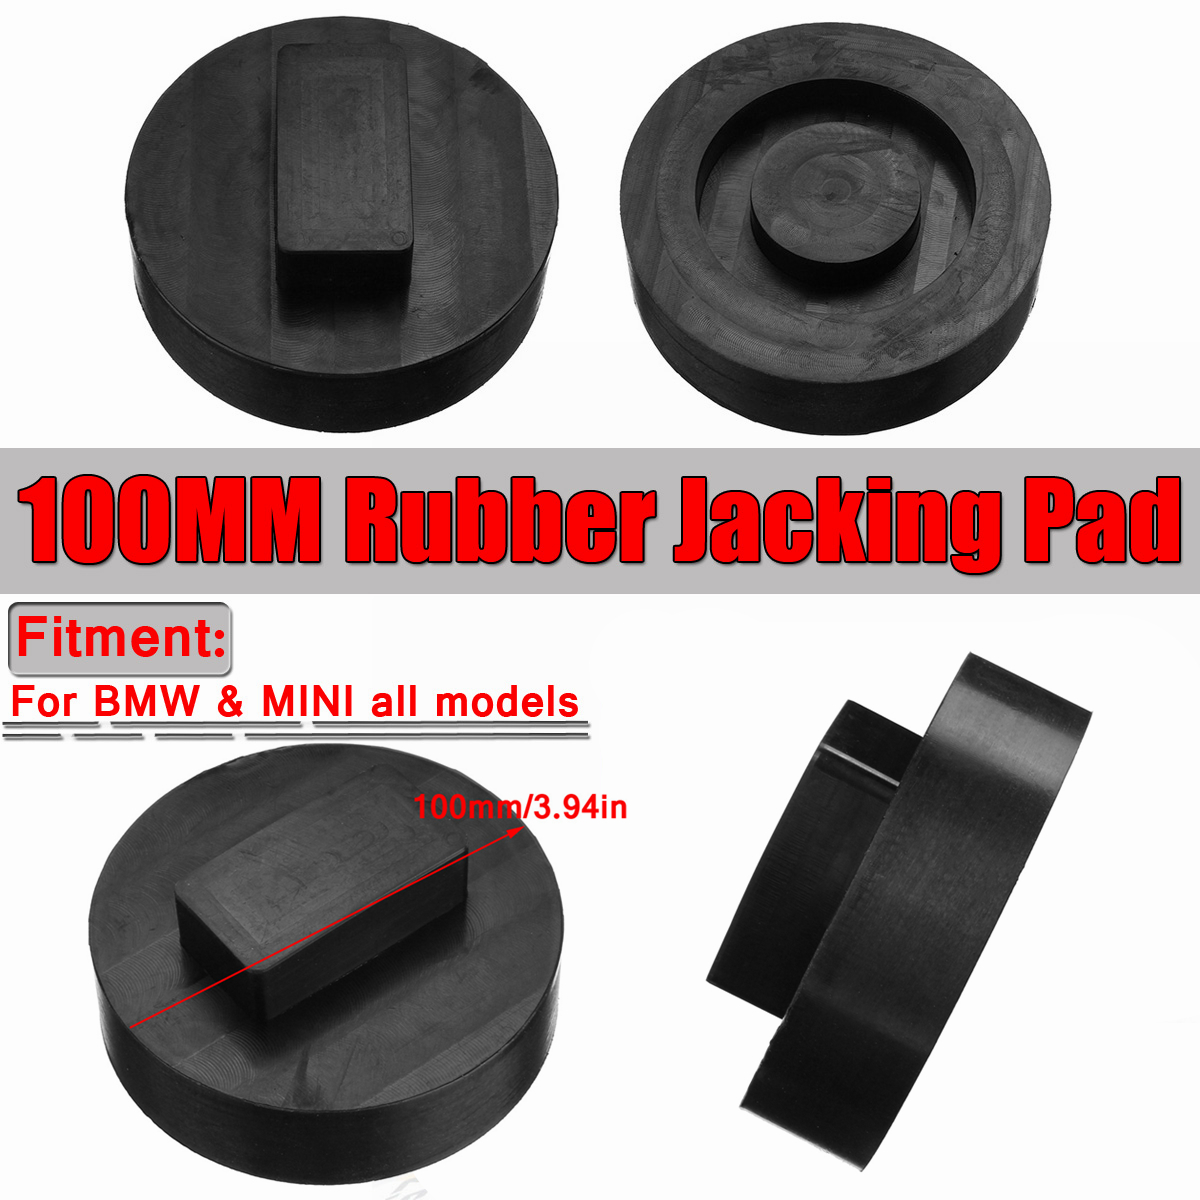 Car Rubber Jack Pad For BMW Tool Jacking Lifting Pad Adapter For BMW Mini E81 E82 E87 F22 F23 F45 F46 F32 Tool-cric Adaptateur